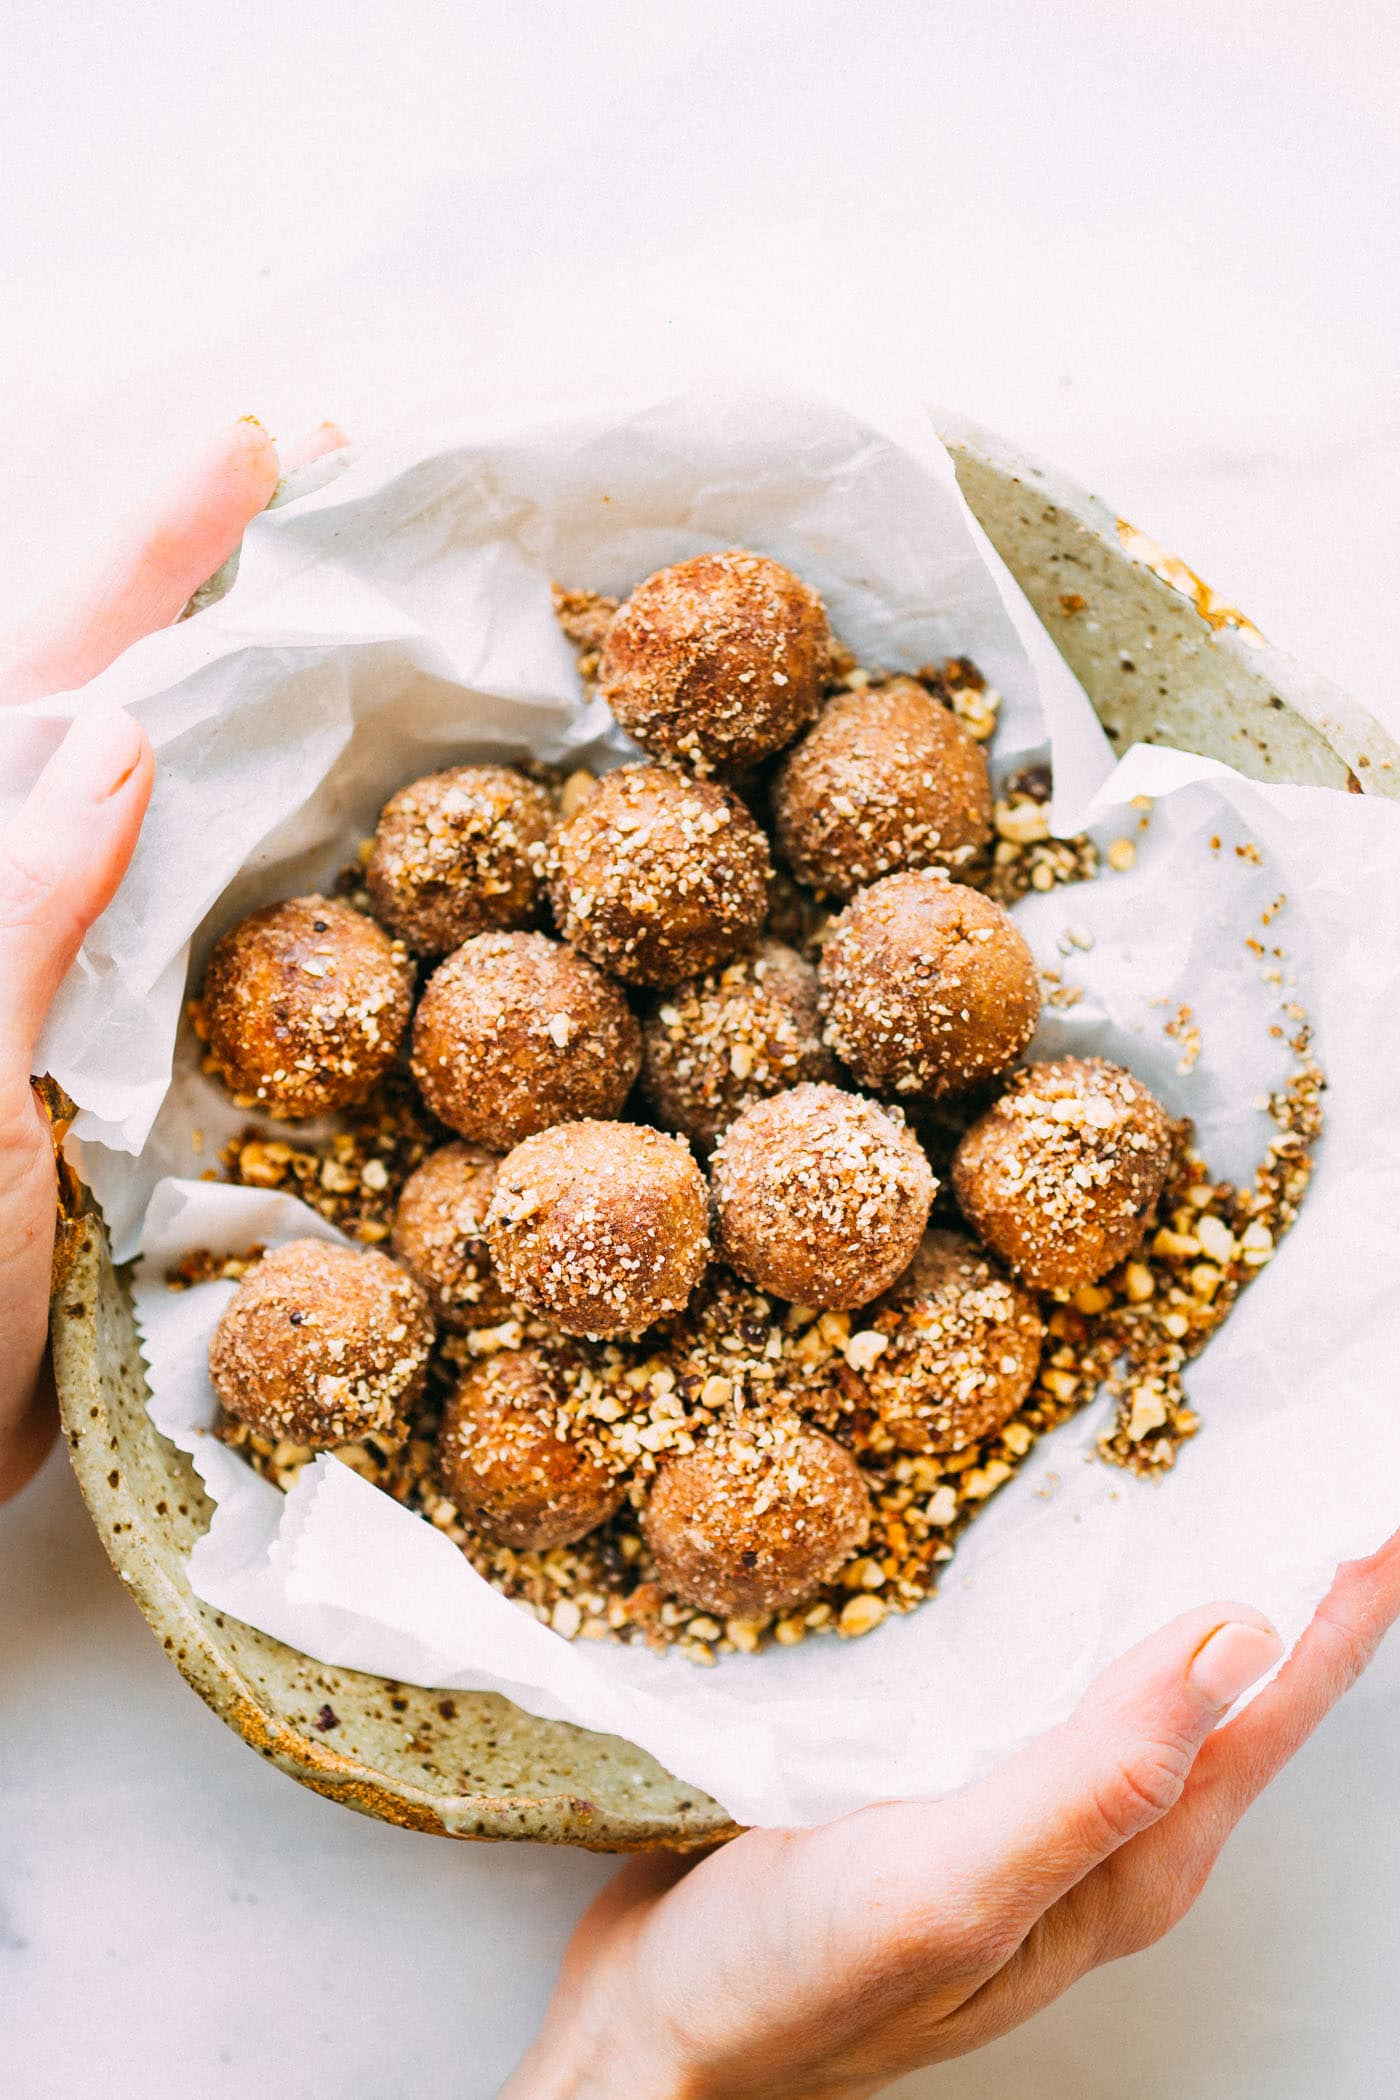 Ultimate No Bake Breakfast Cookie Bites recipe! Packed full wholesome ingredients, rich in fiber, a boost of protein! Tastes like a cookie but suitable for breakfast! Cinnamon, oats, nuts, spices, molasses, and maple syrup. It's heavenly ya'll! And vegan friendly too.